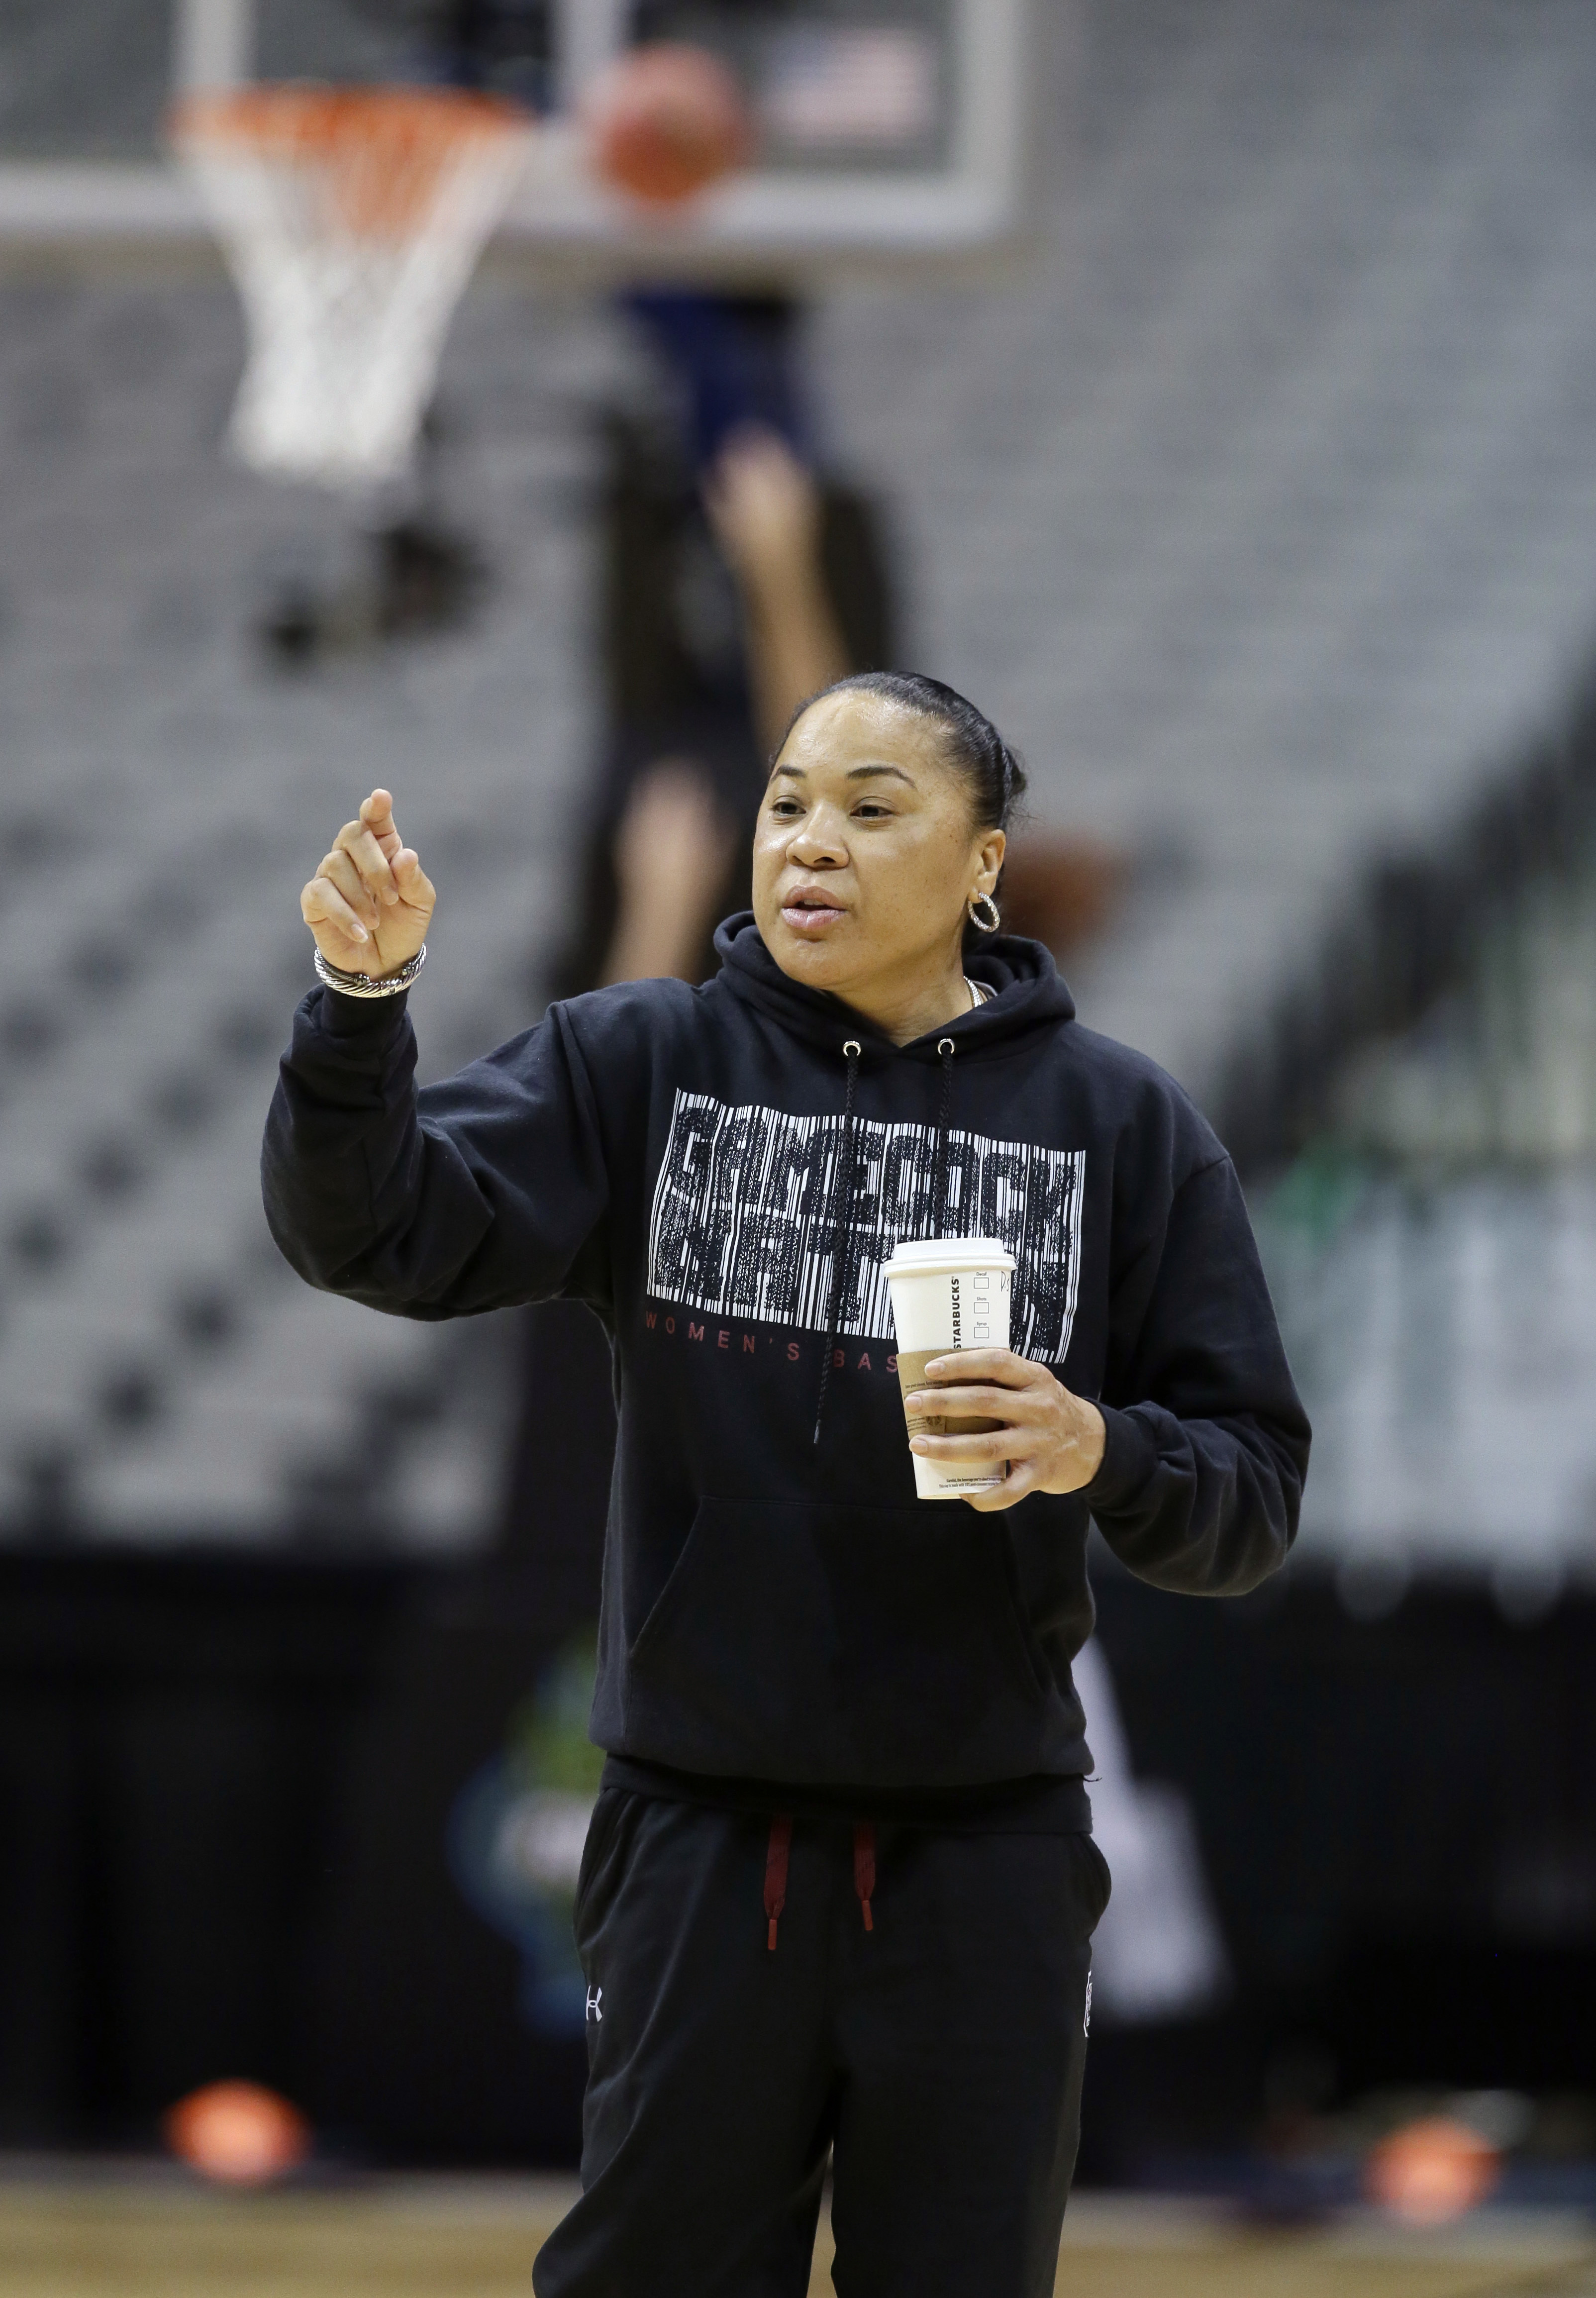 South Carolina head coach Dawn Stanley gives direction to her players during a practice session for the women's NCAA Final Four college basketball tournament, Thursday, March 30, 2017, in Dallas. South Carolina plays Stanford on Friday. (AP Photo/LM Otero